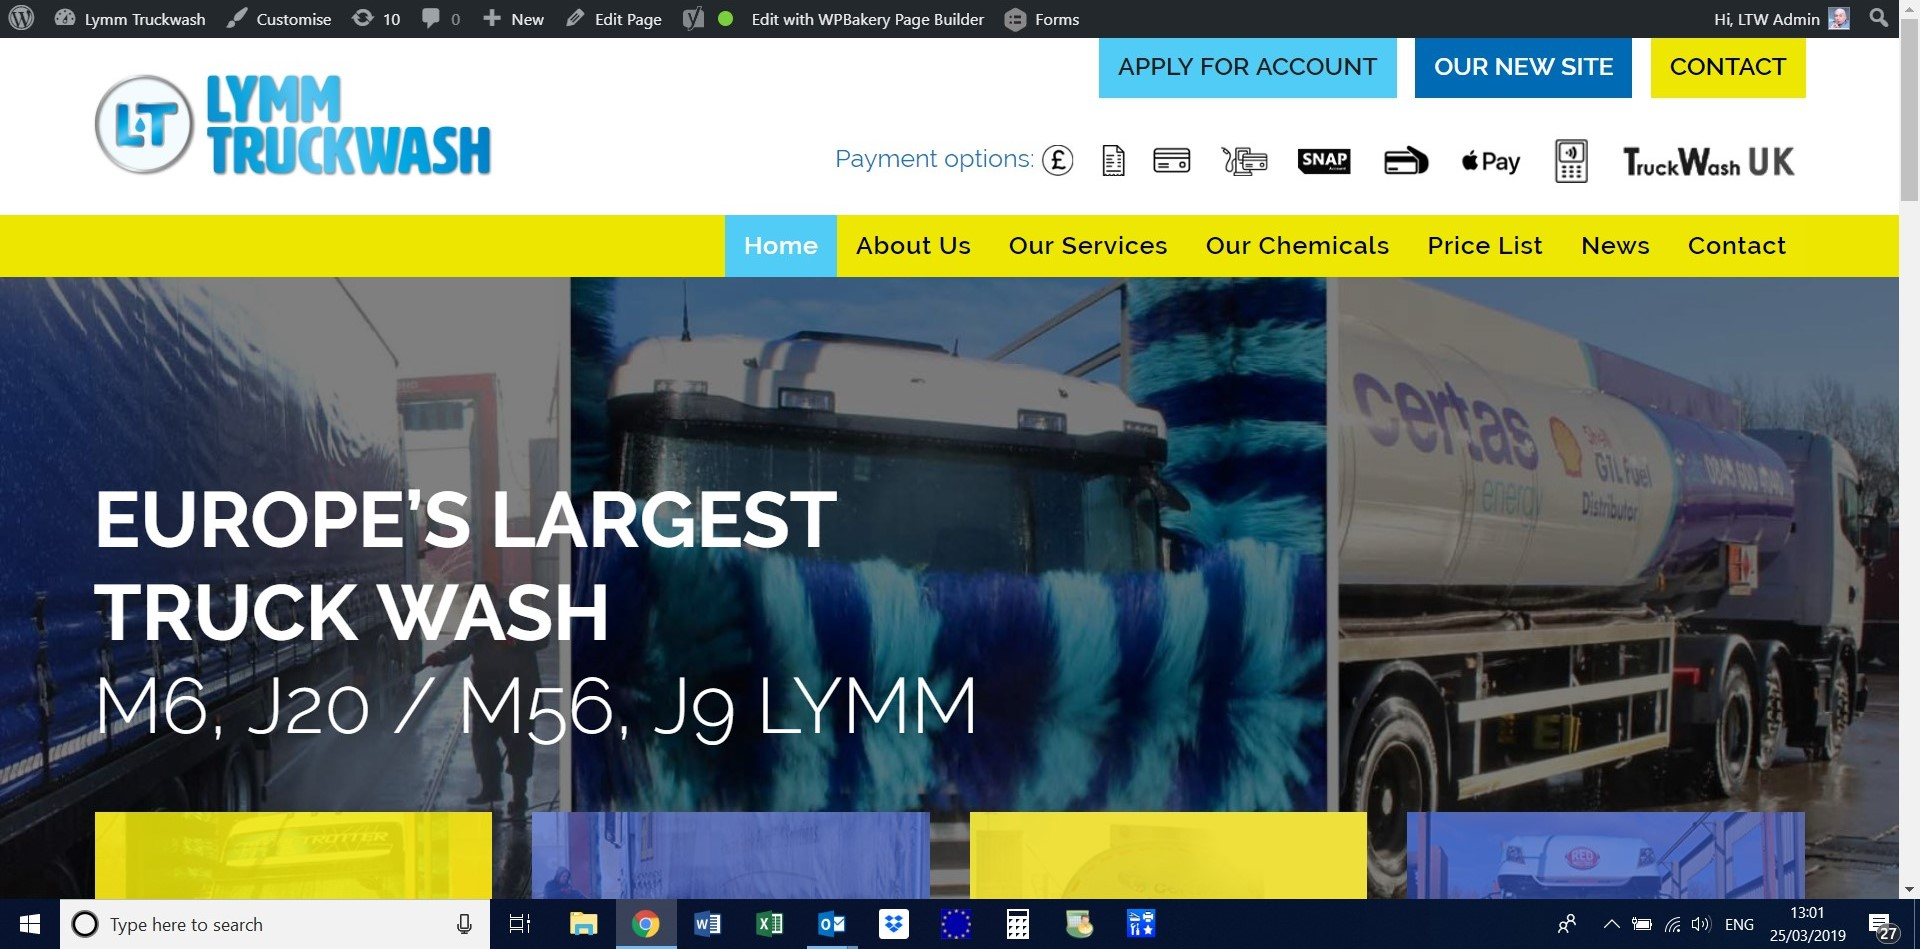 Lymm Truckwash new website